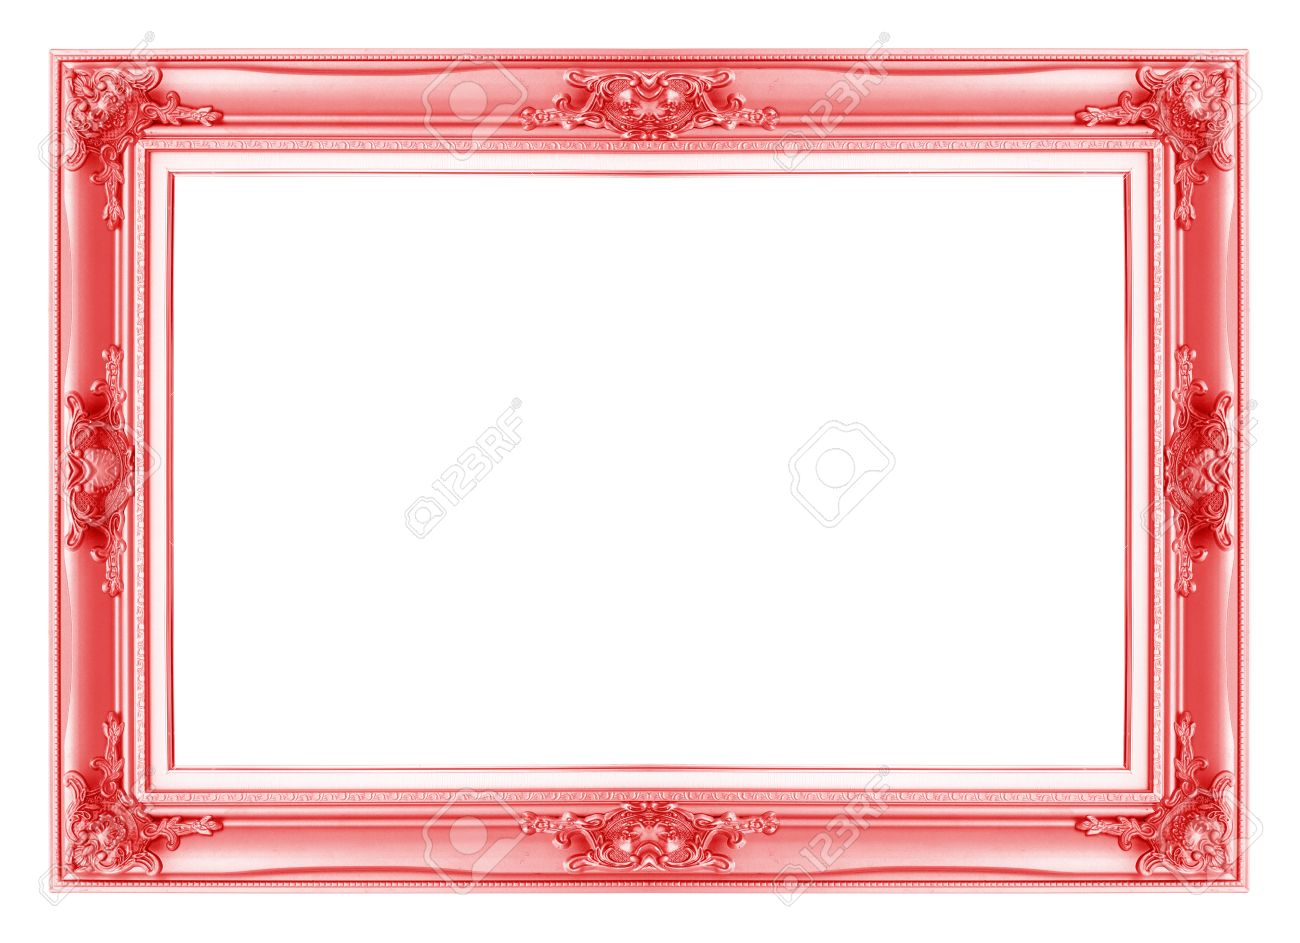 white antique picture frames. Red Antique Vintage Picture Frames. Isolated On White Background Stock Photo - 29242903 Frames D